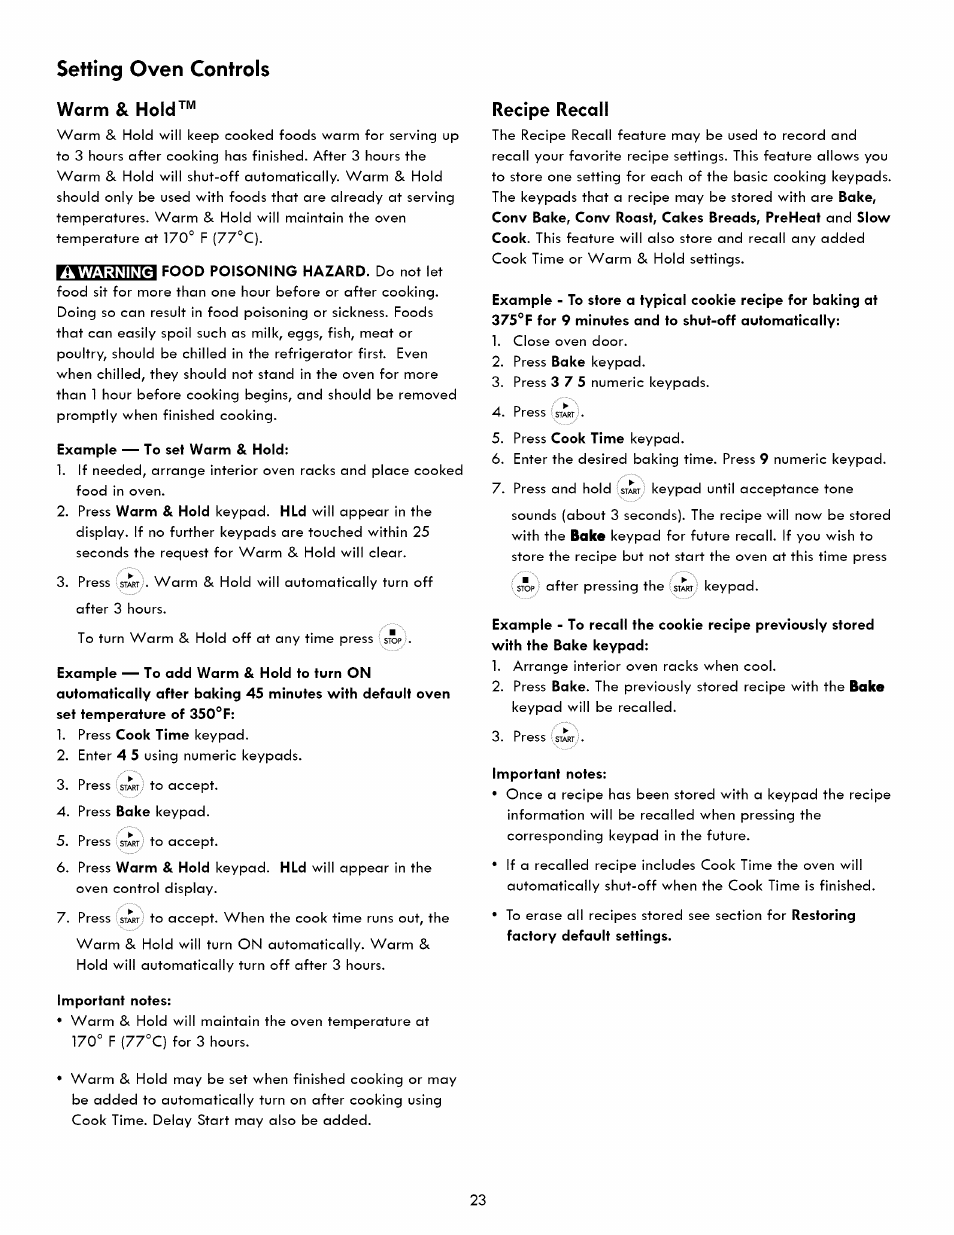 Warm & hold, Recipe recall, Setting oven controls | Kenmore